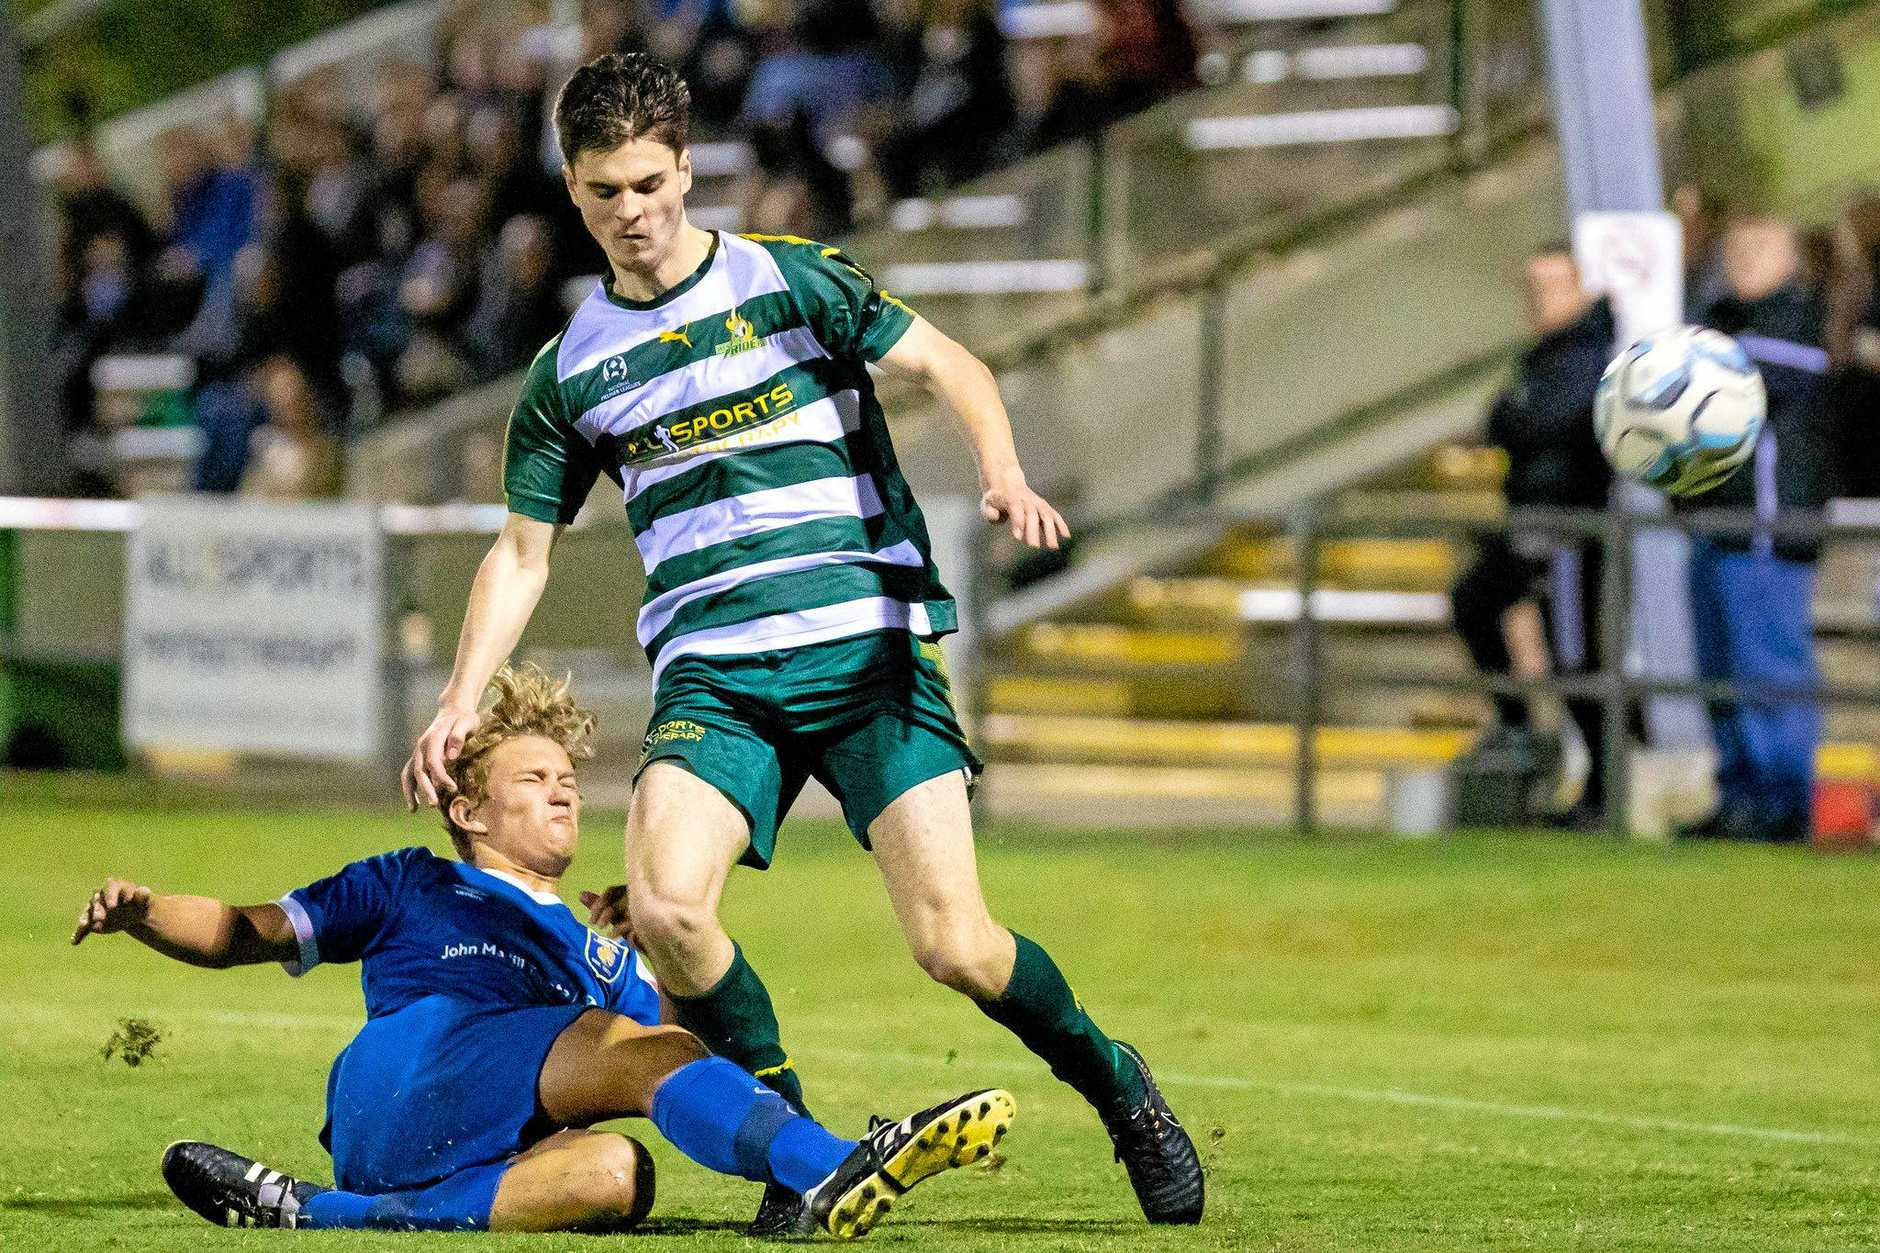 SWITCHING ROLES: Western Pride striker Michael Morrow will be switched to defence for his team's do-or-die state league match against Gold Coast United in Ipswich on Saturday night.